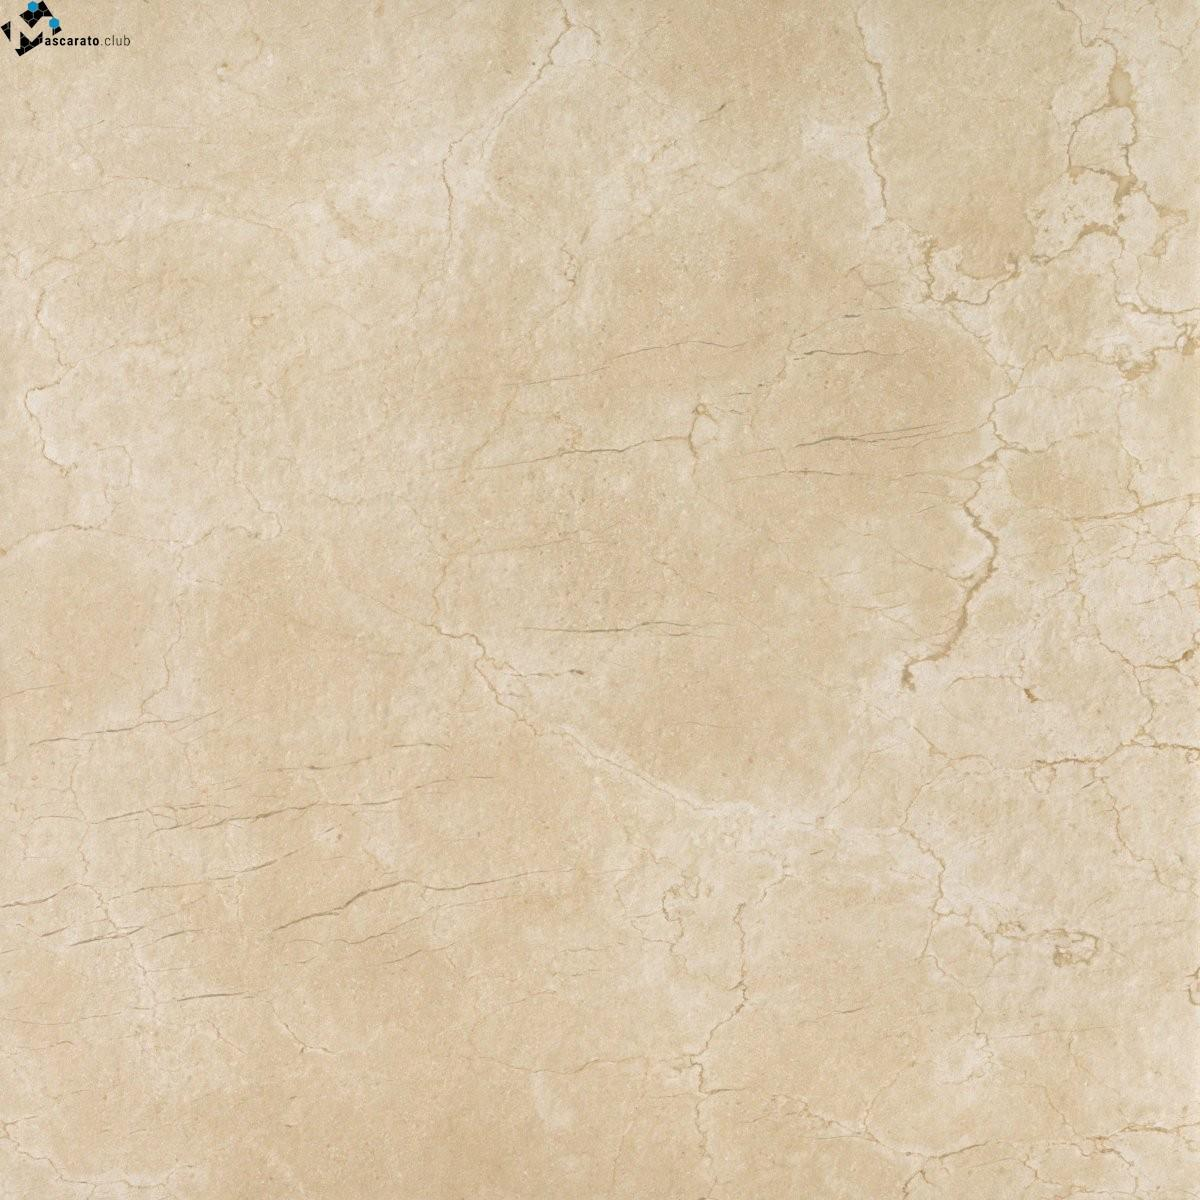 Atlas Concorde Supernova Stone Cream Wax Rett 60x60